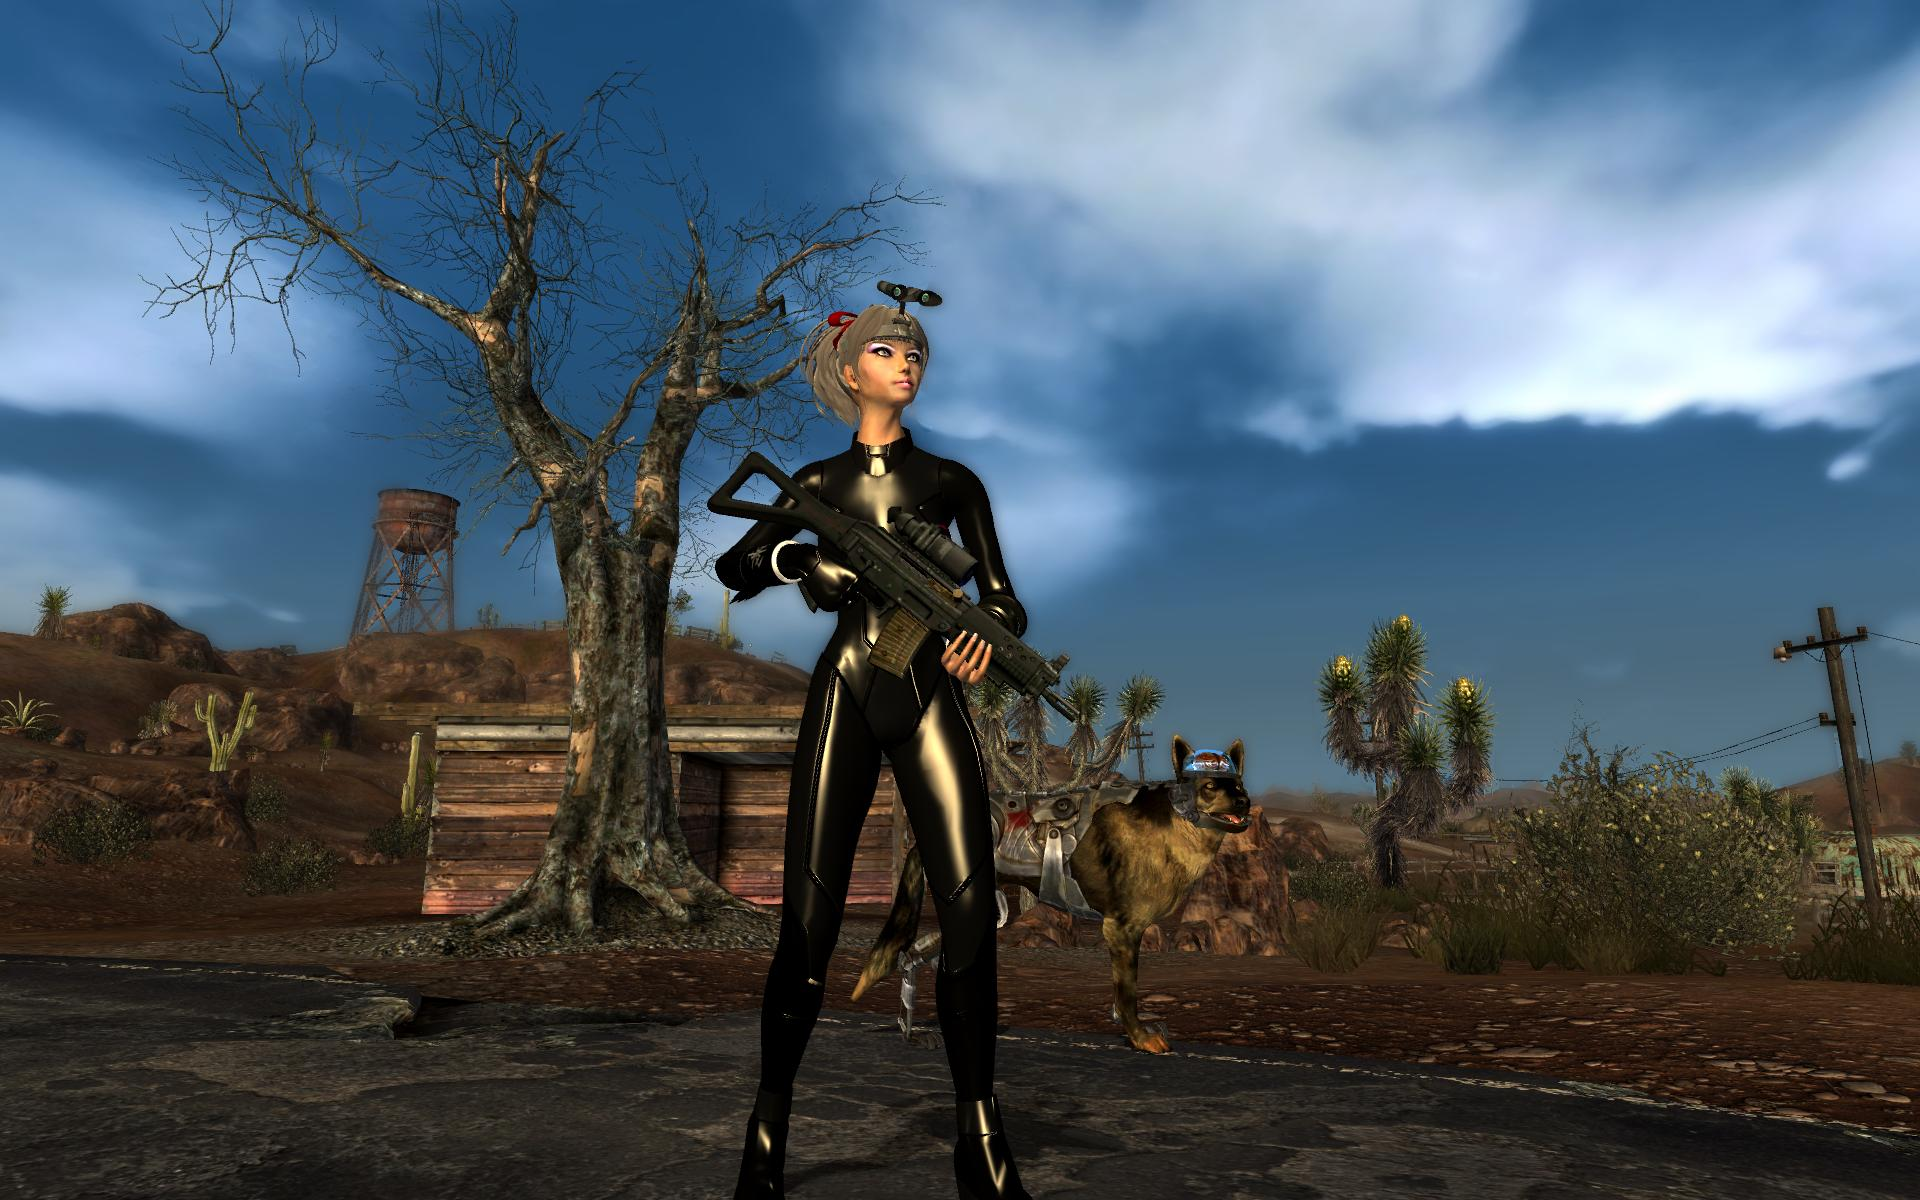 nude girls from fallout